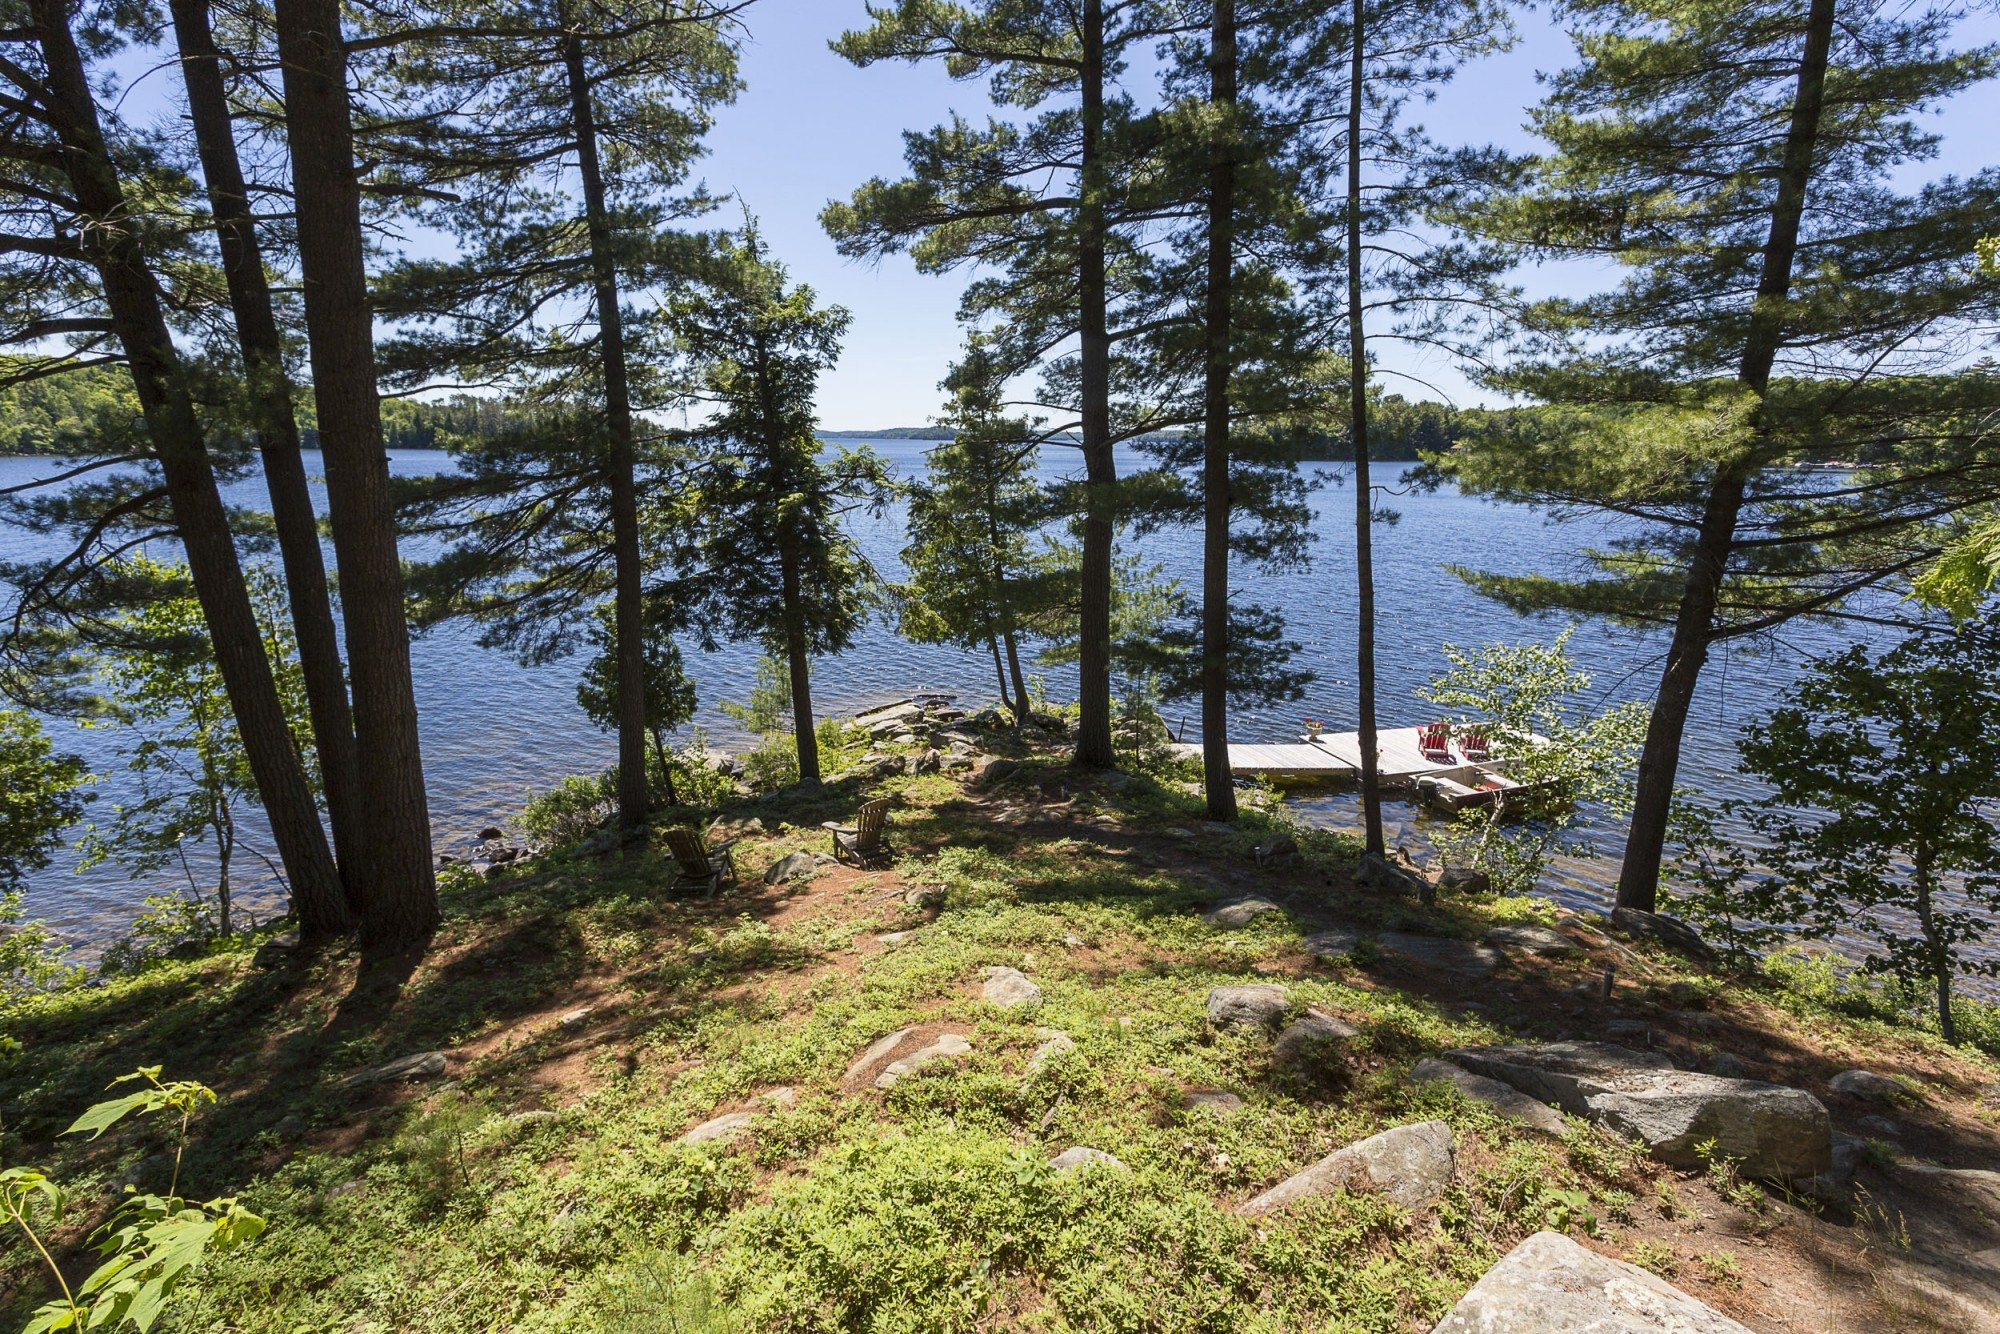 lake-of-bays-cottage-of-the-week-1057-montgomery-bay-road.11